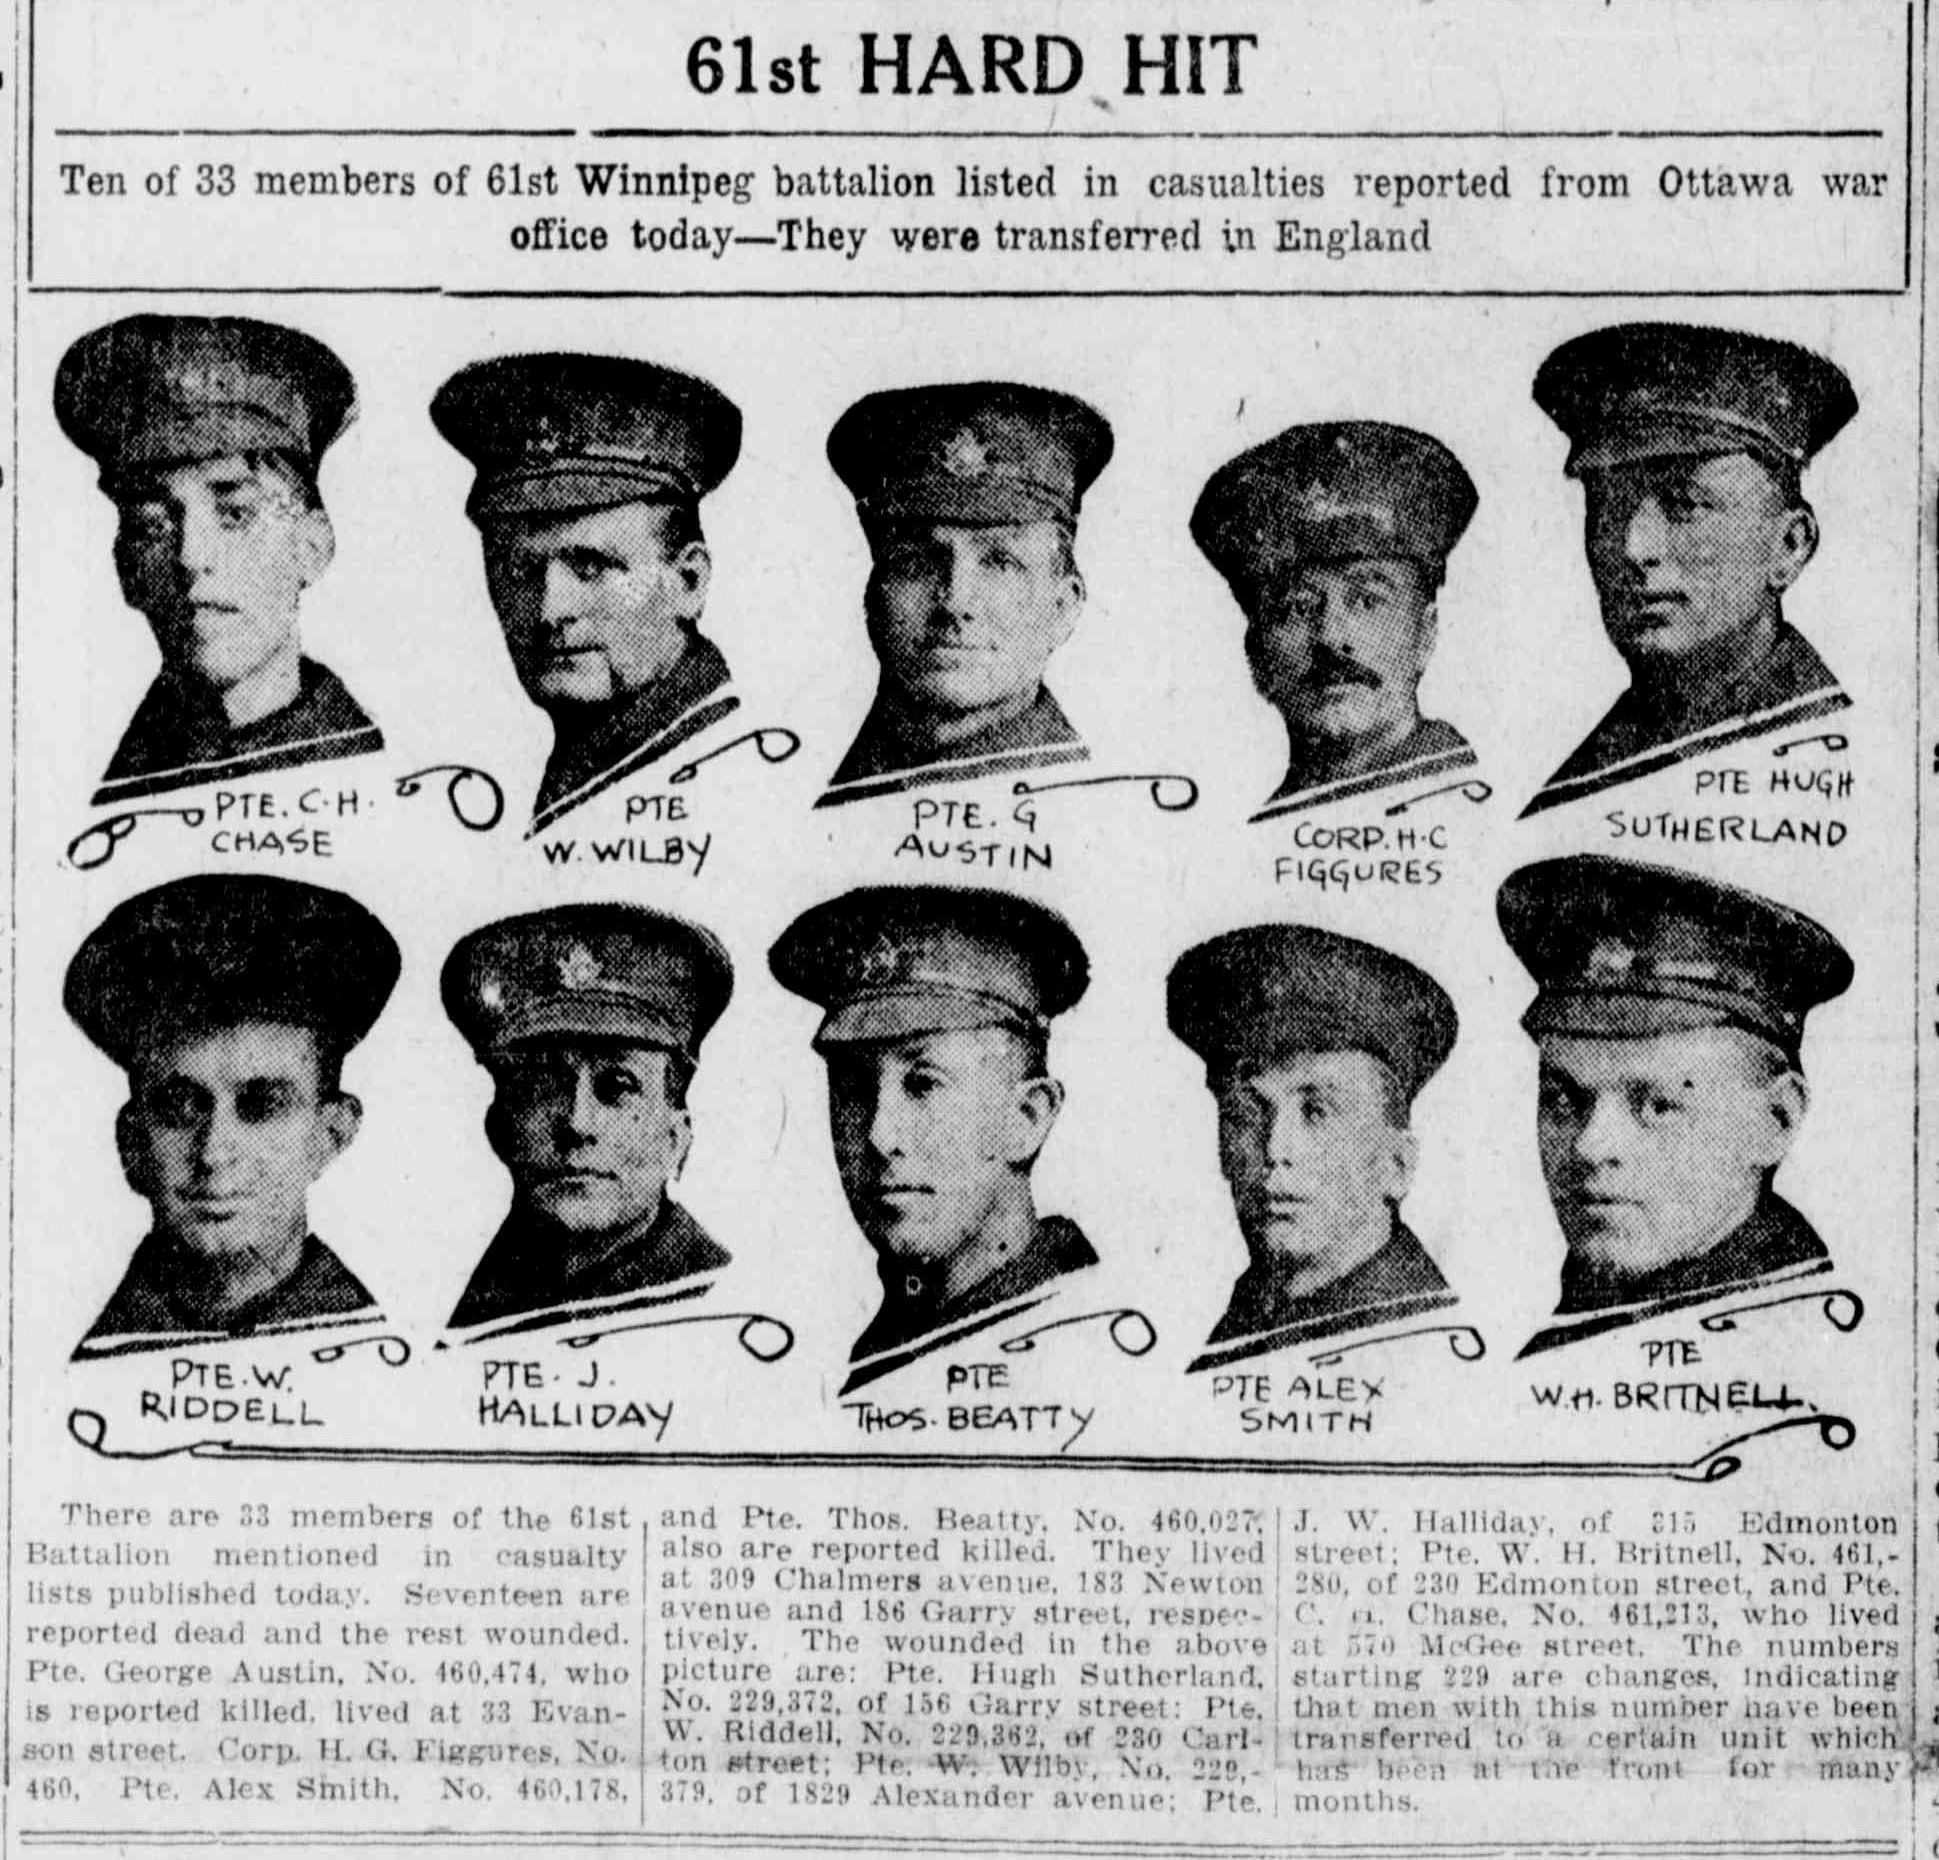 Newspaper Clipping– Image Source: The Winnipeg Evening Tribune, 1916-11-09 (Page 1)